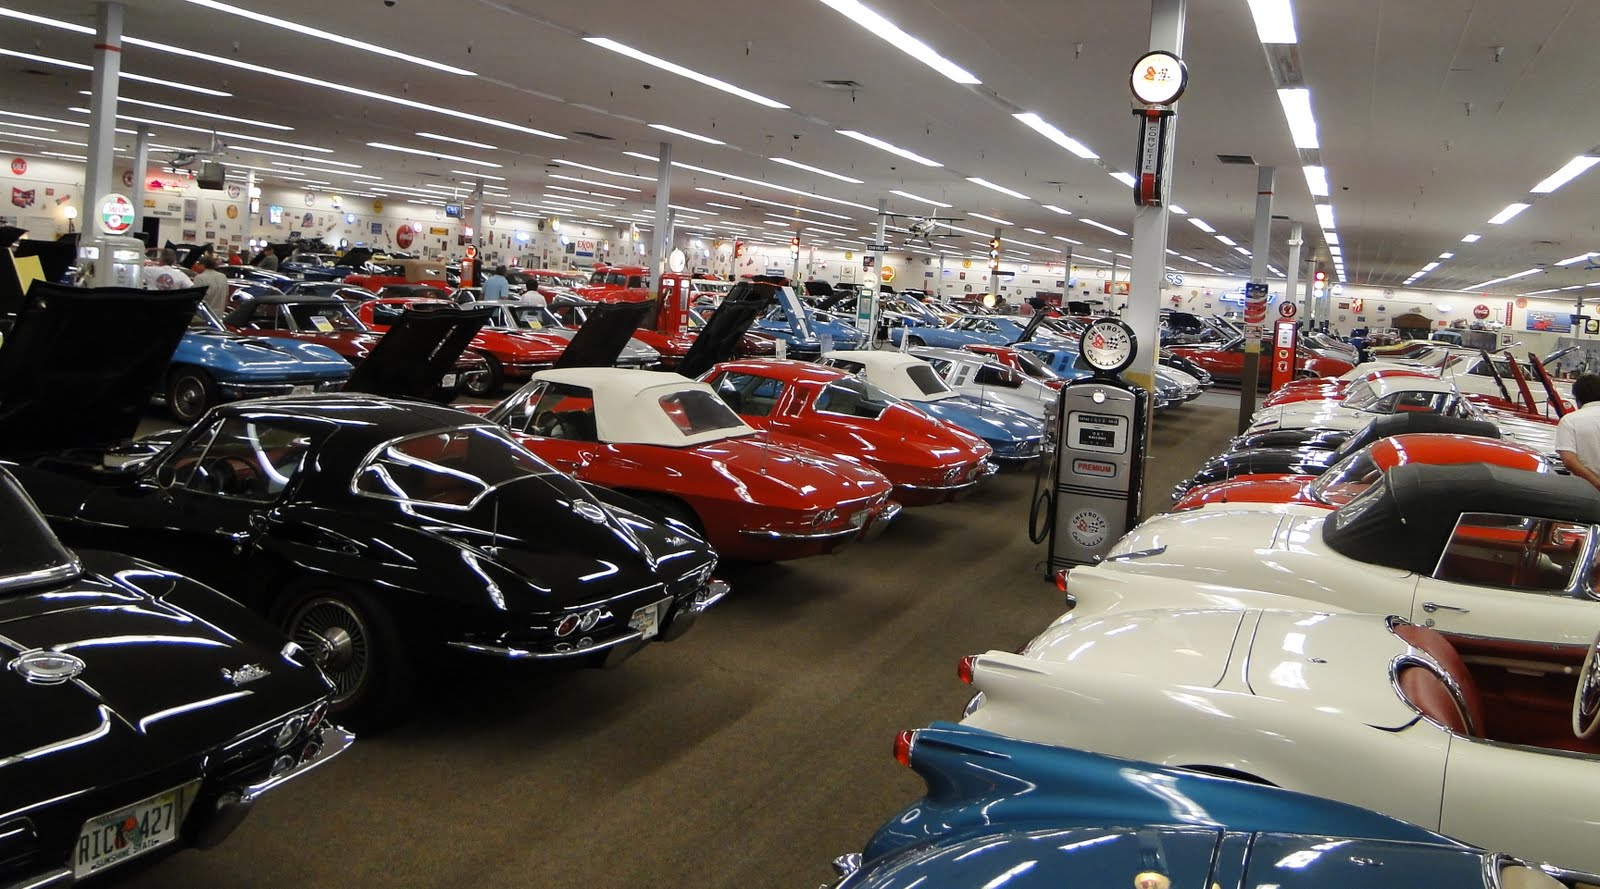 Walk On The Wild Side Corvette Club Travels To Muscle Car City